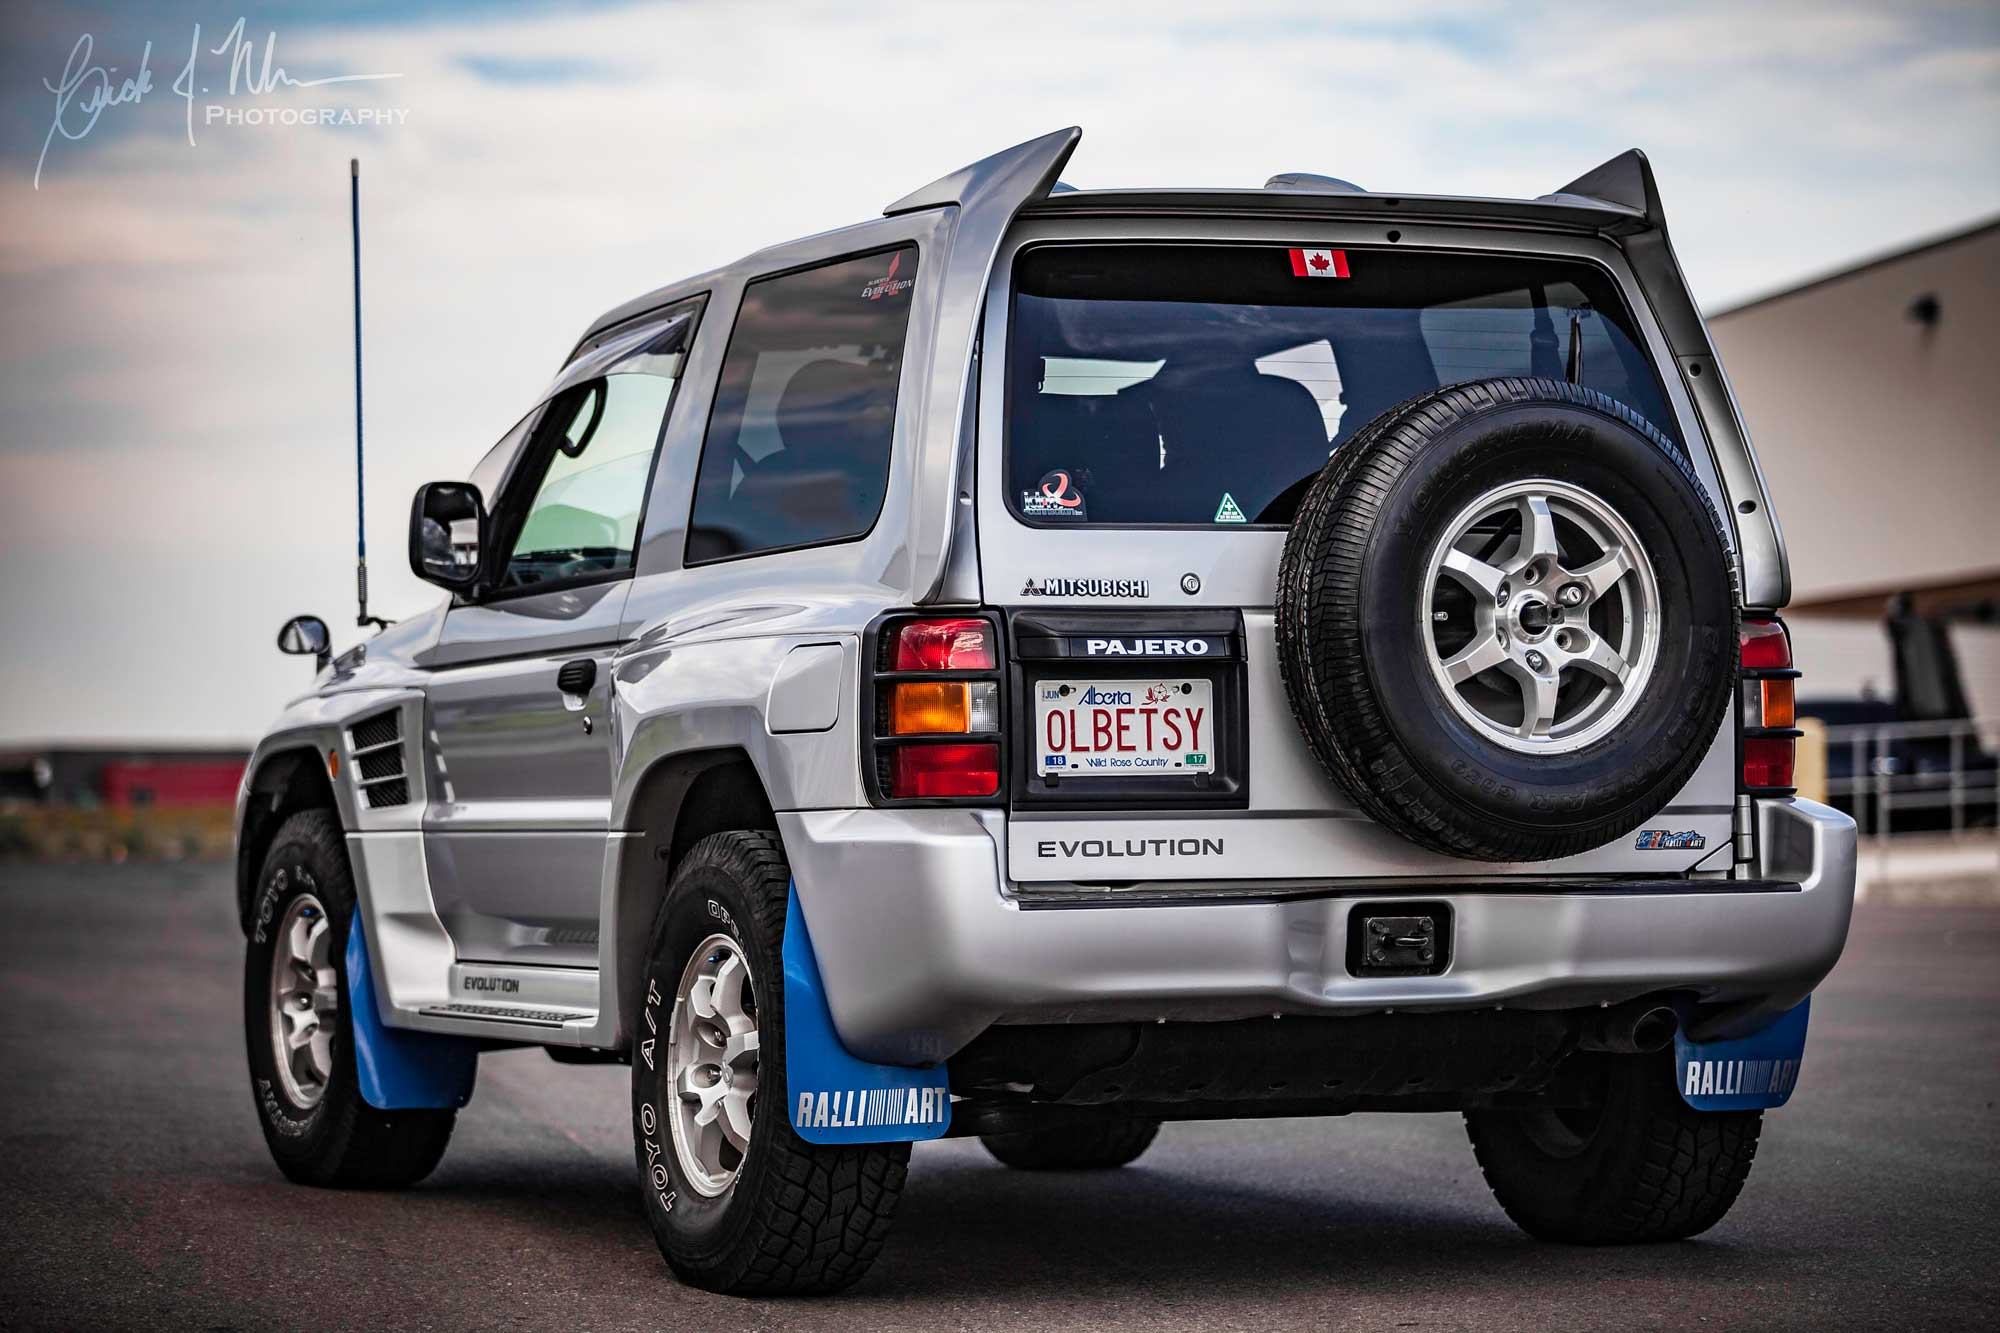 Mitsubishi Pajero Evolution back end